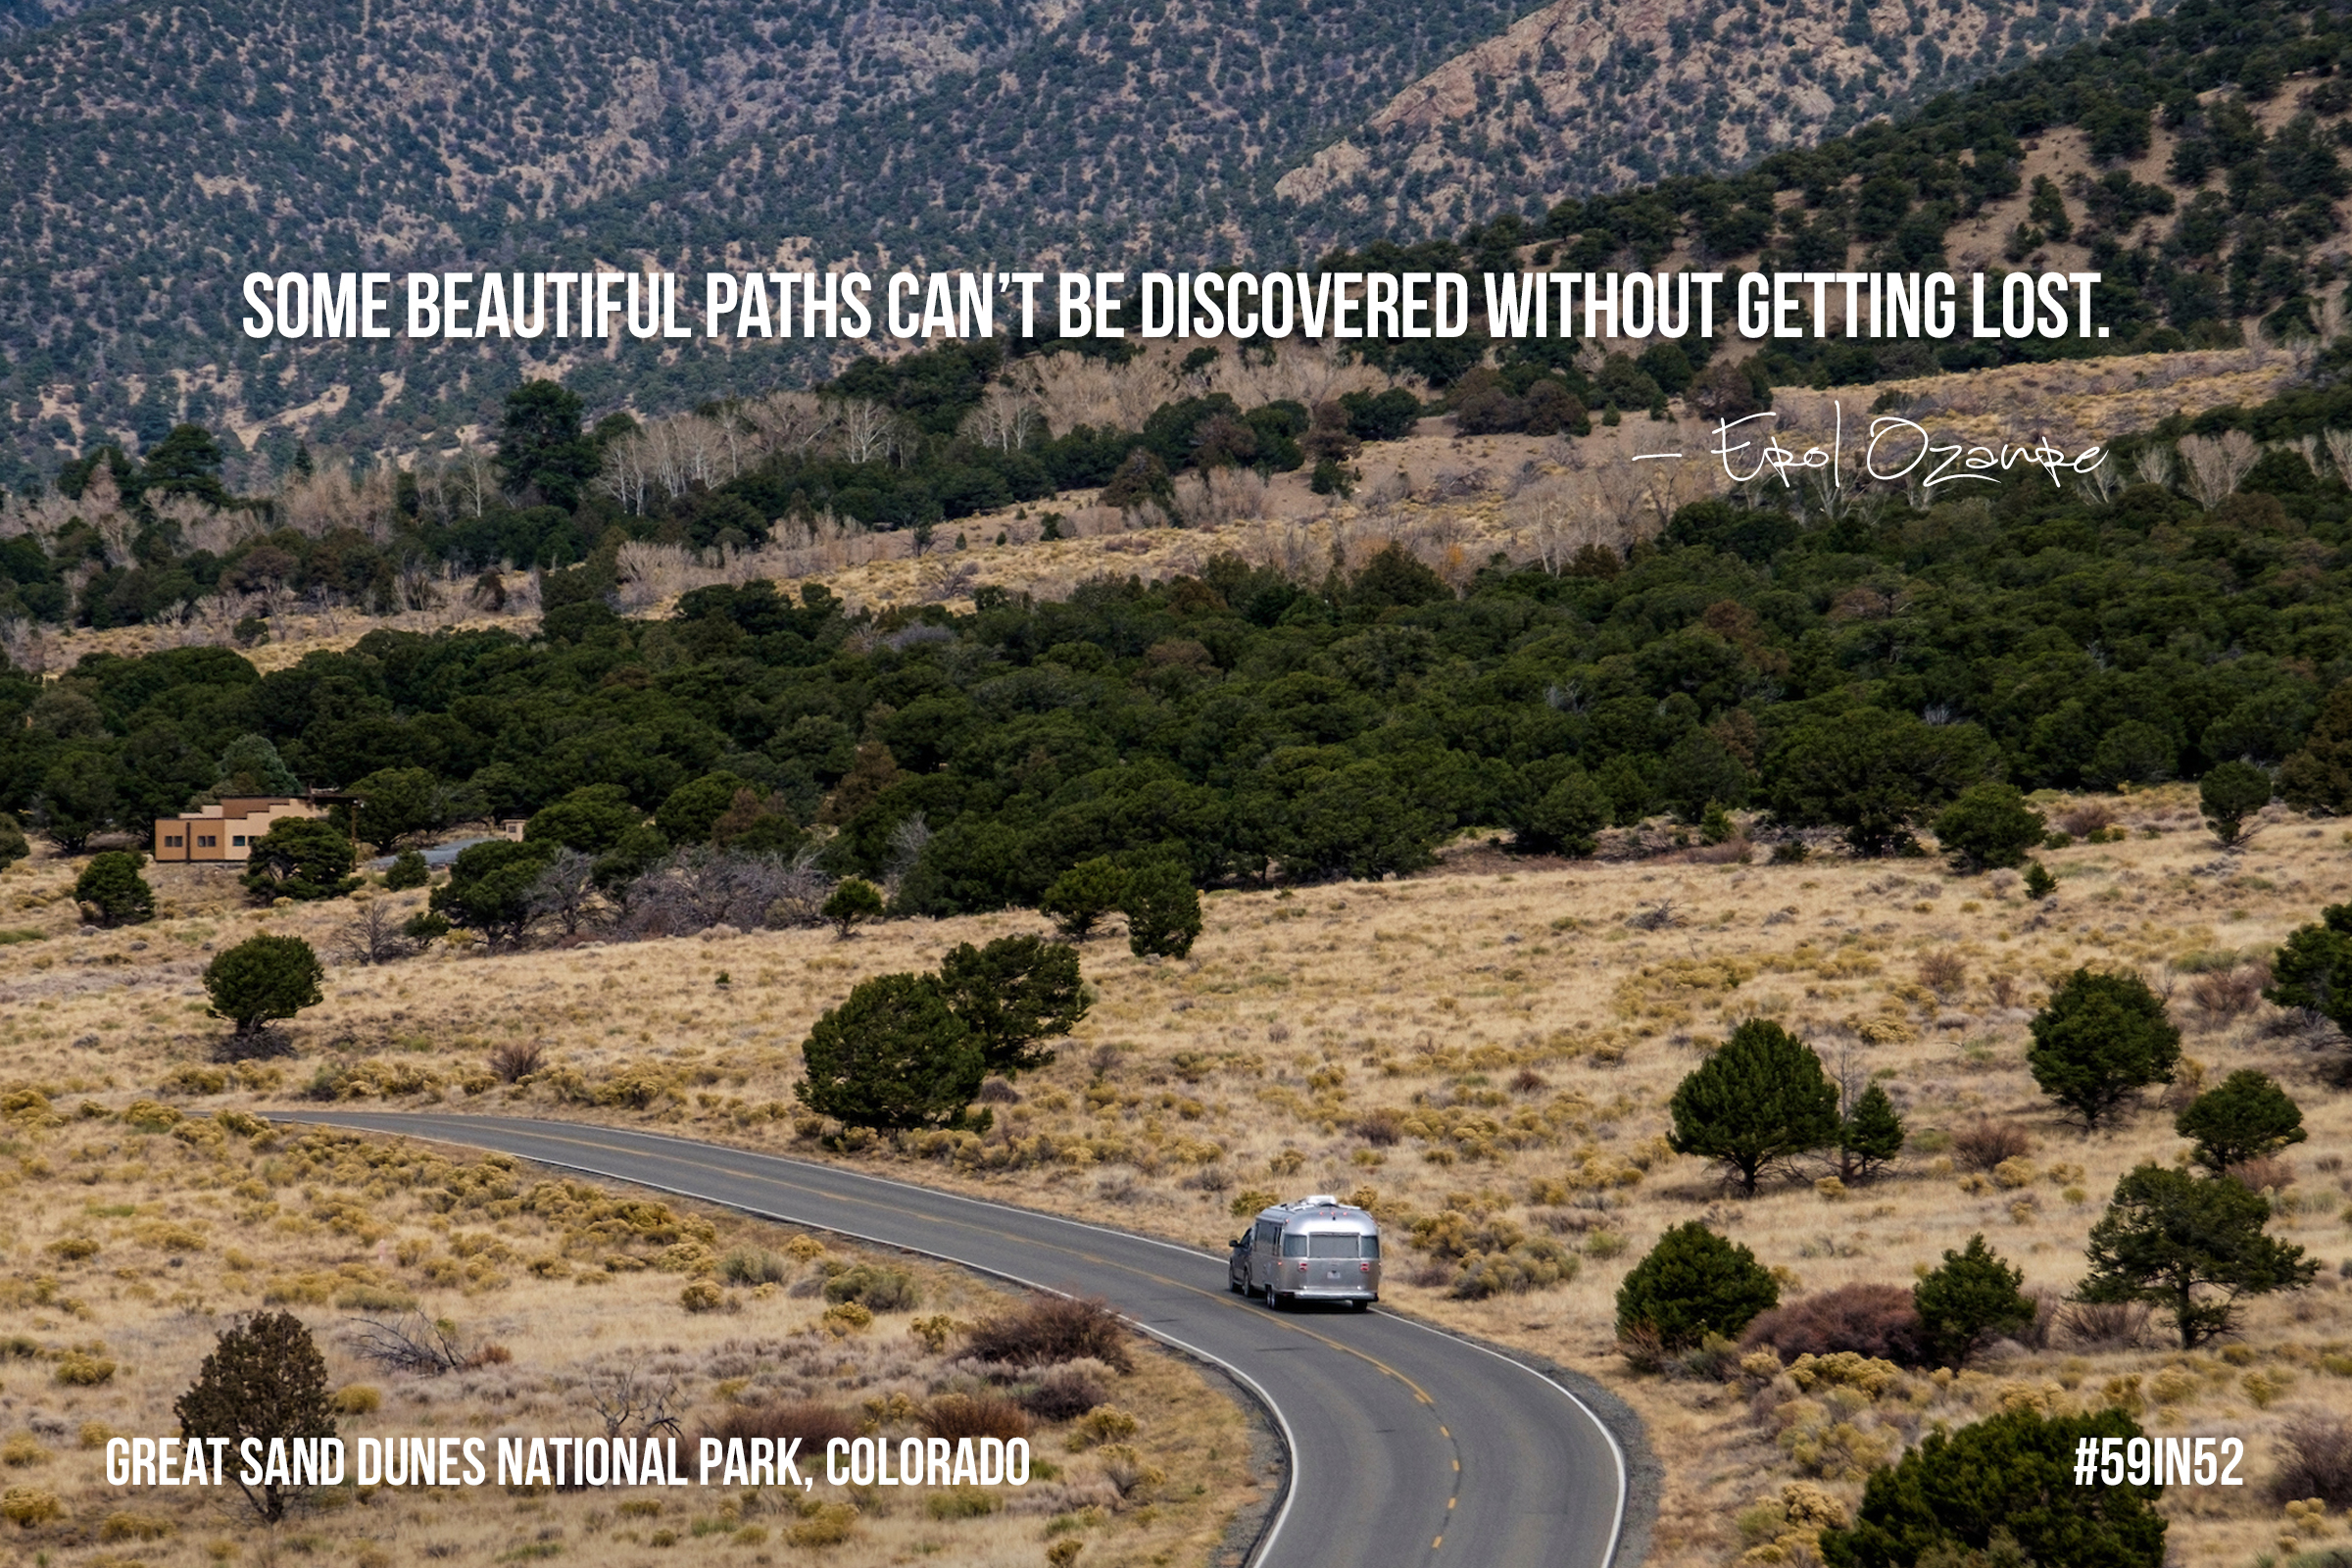 """Some beautiful paths can't be discovered without getting lost."" - Erol Ozanre"